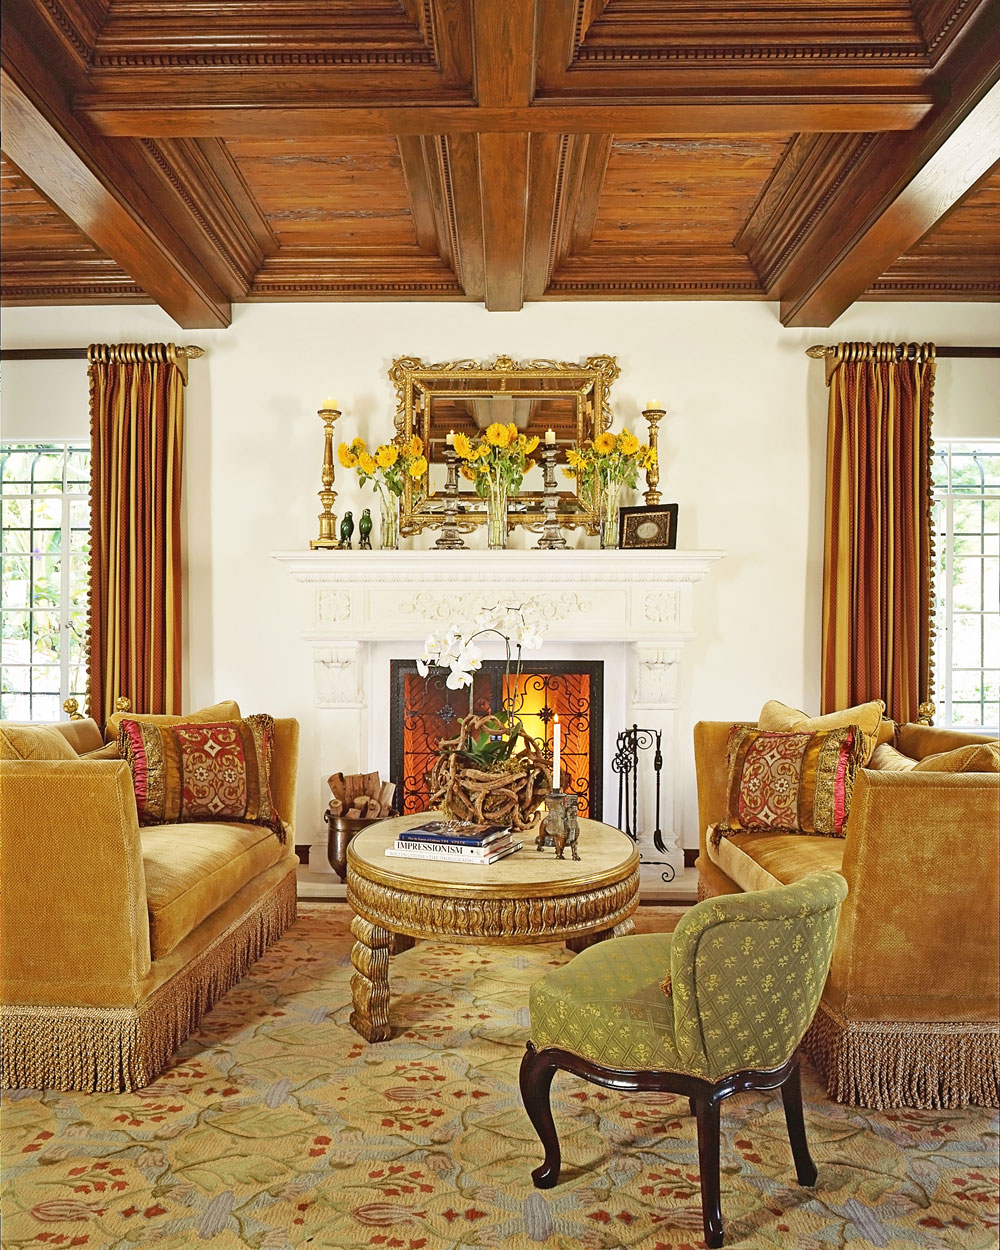 4-couch-living-room-fireplace-dee-carawan.jpg